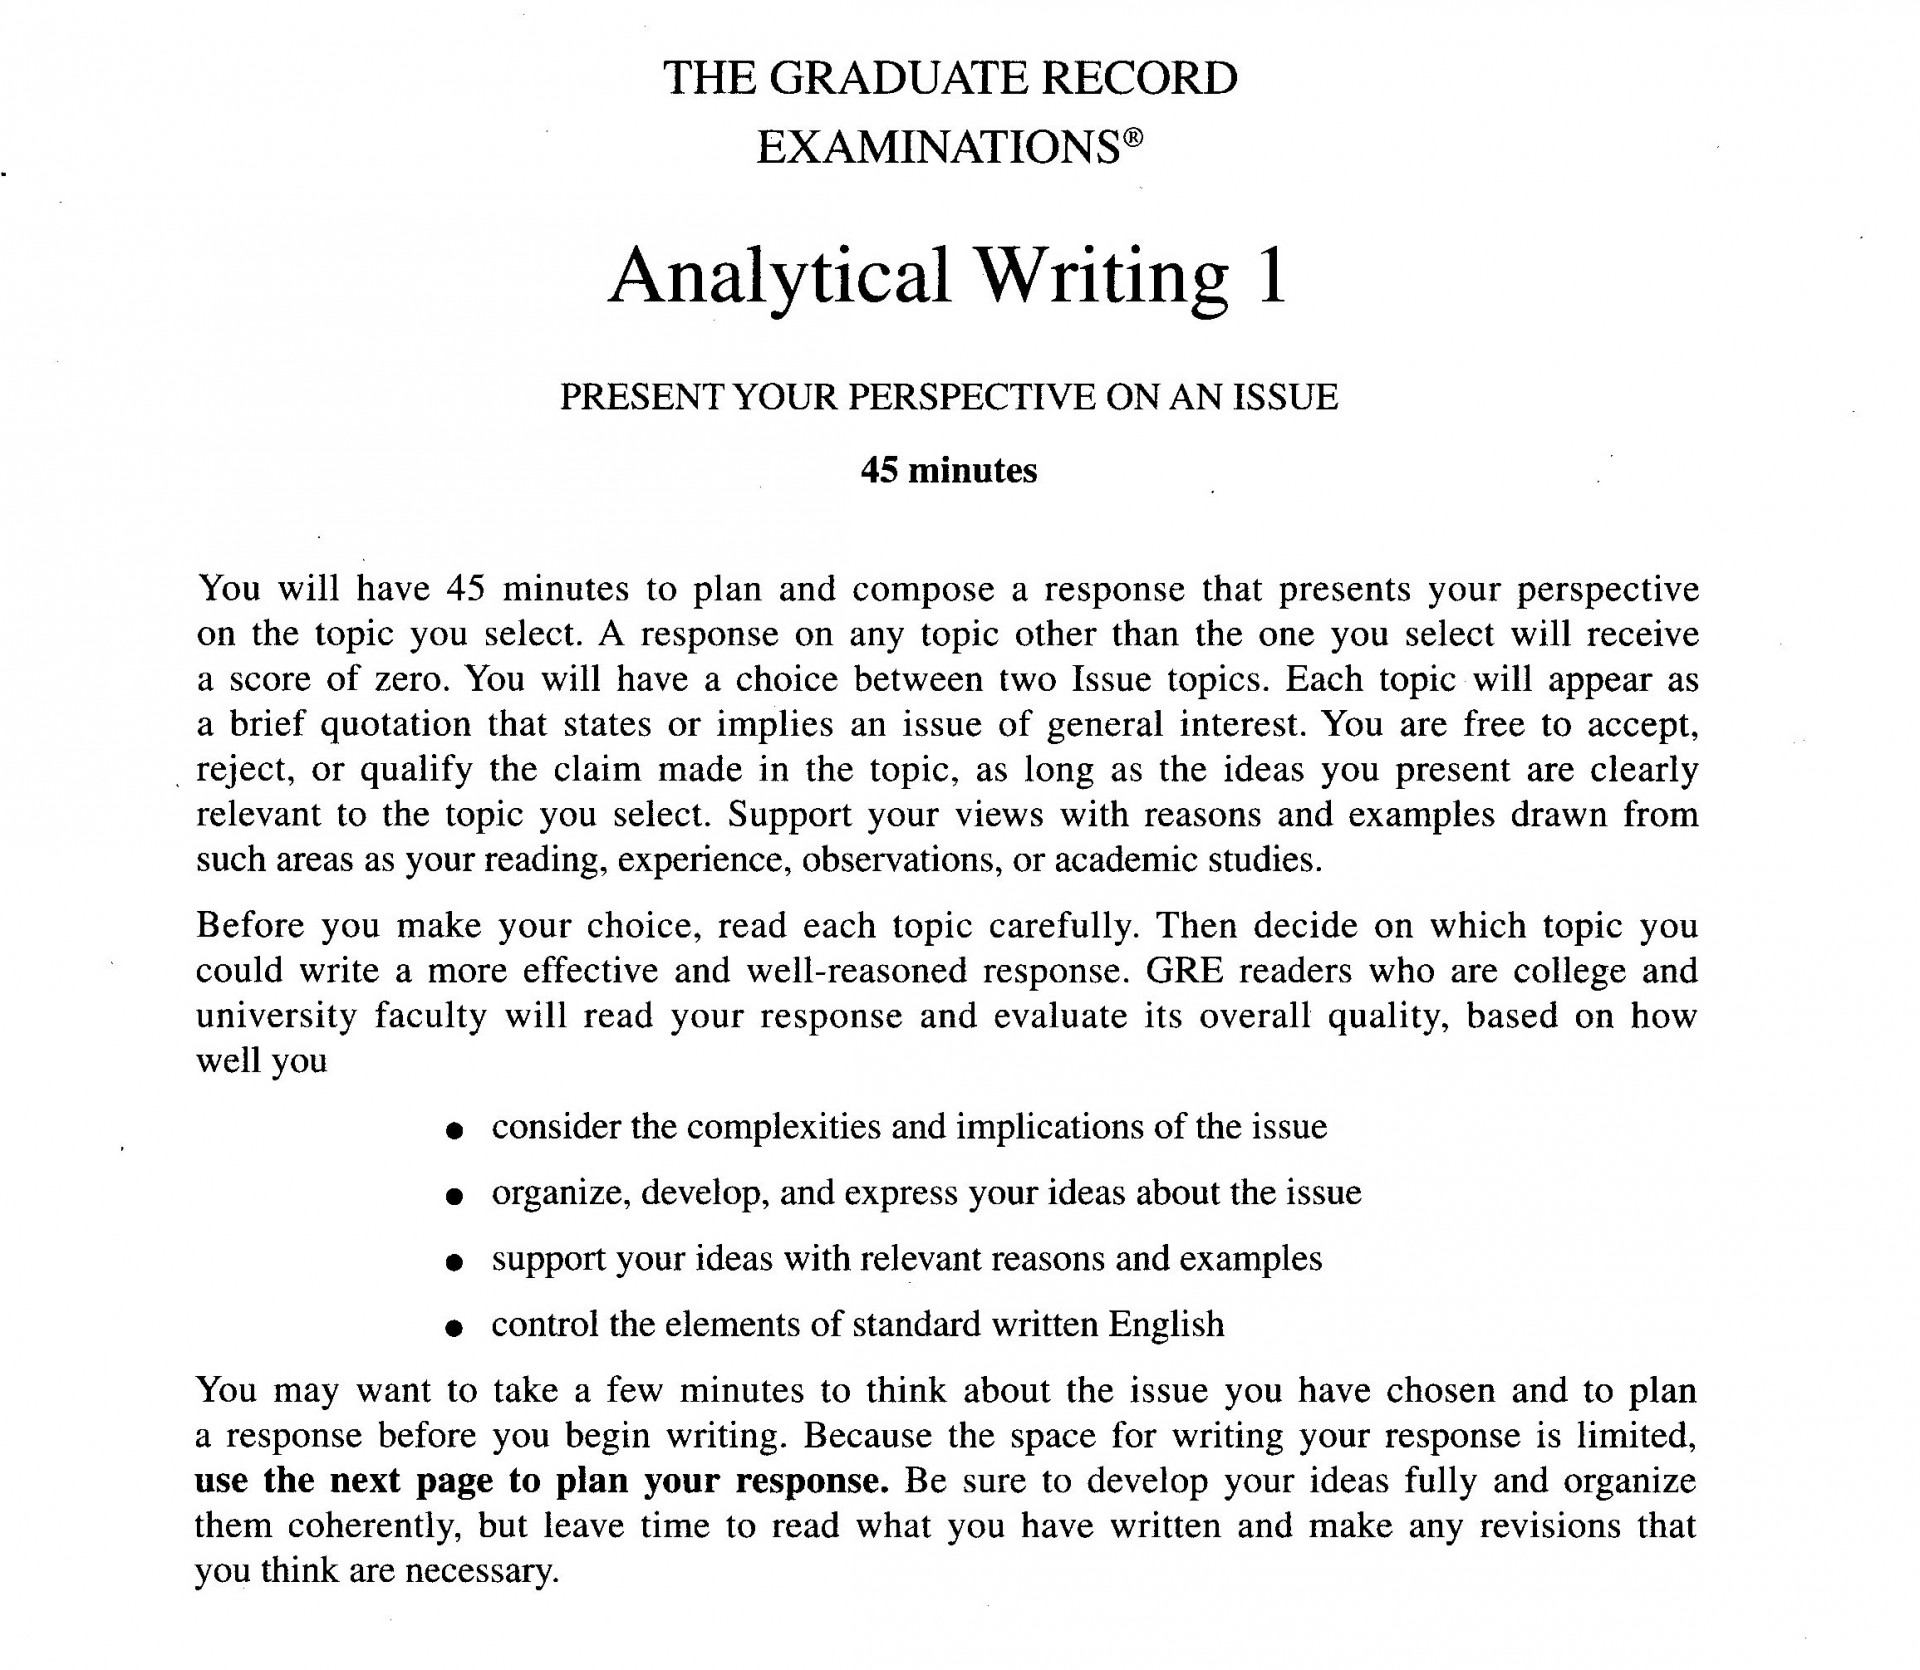 011 Essay Writer Free Analytical20writing20issue20task20directions20for20gre201 Amazing Trial Unblocked Software 1920